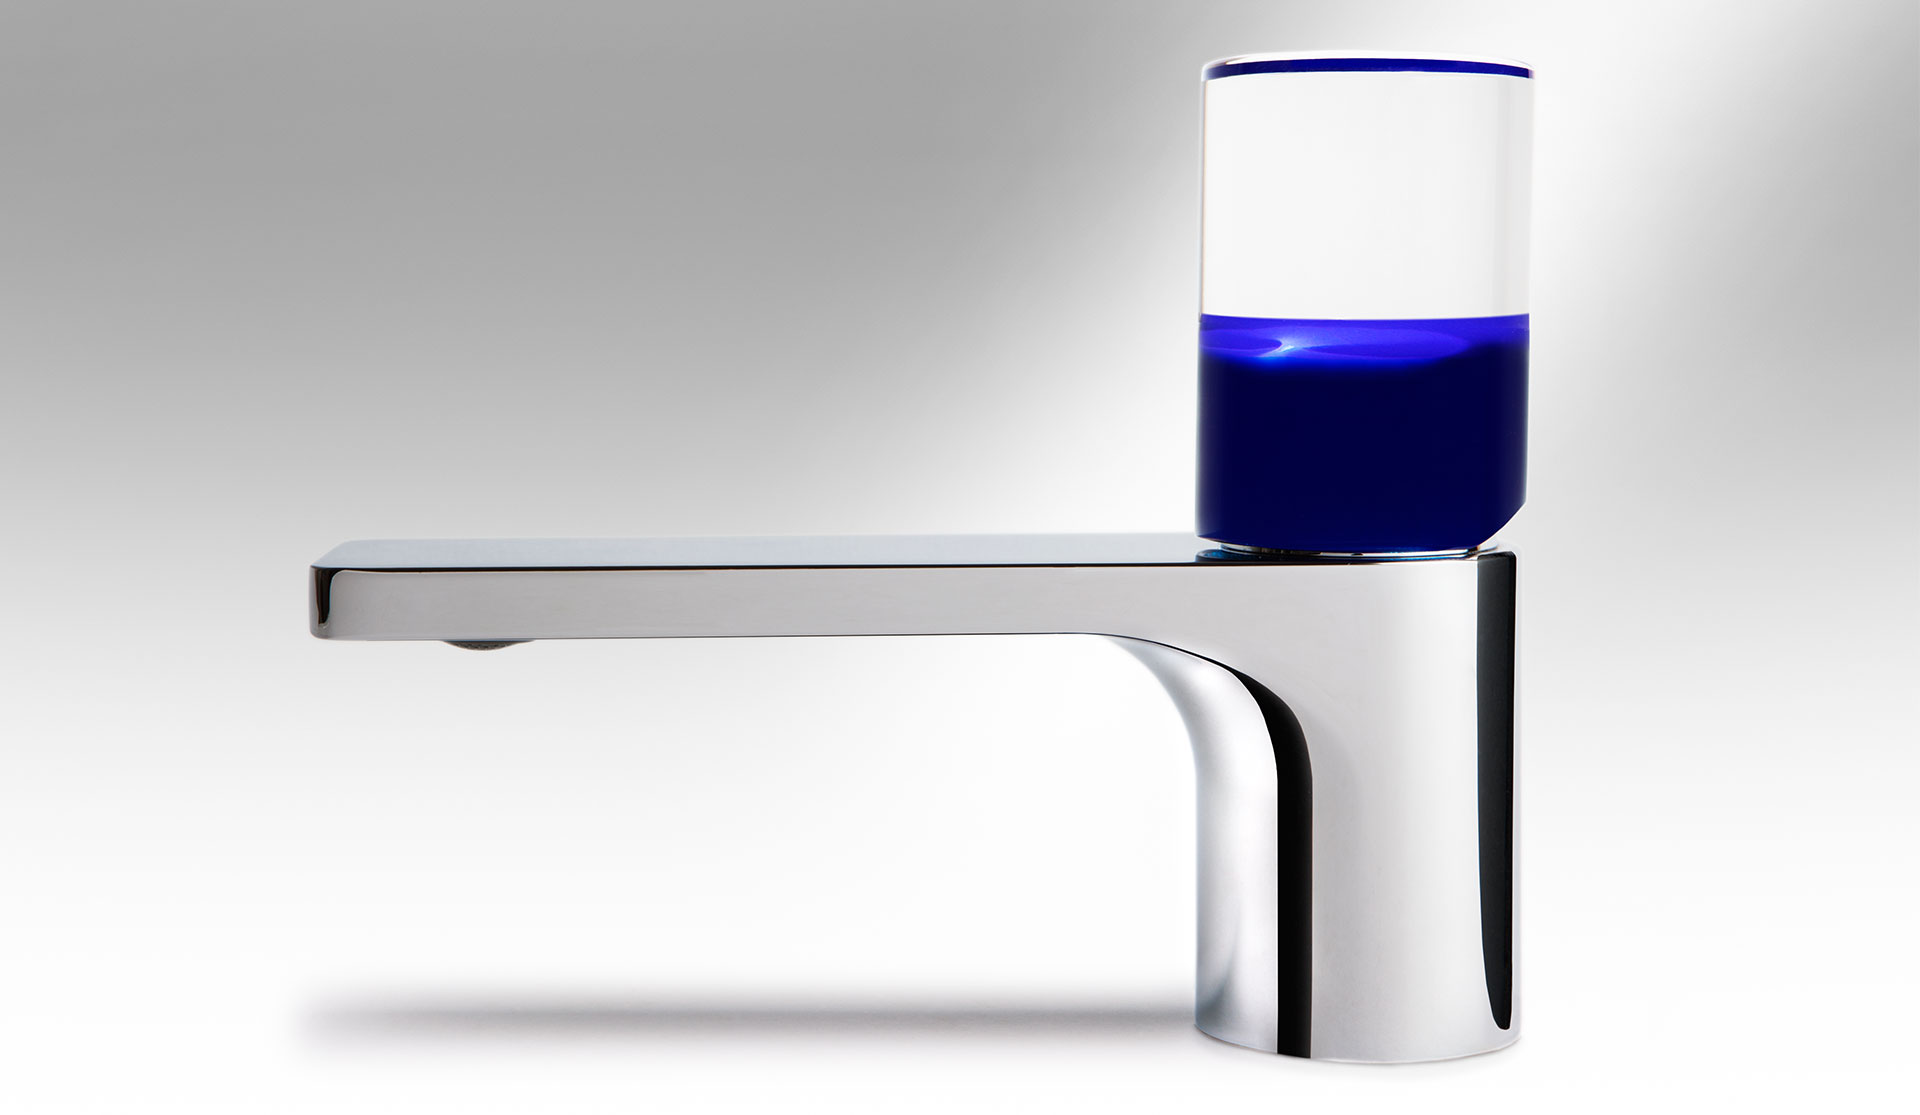 oro an focus st with batterialavabo katalan lindsey fantini faucets interview faucet by